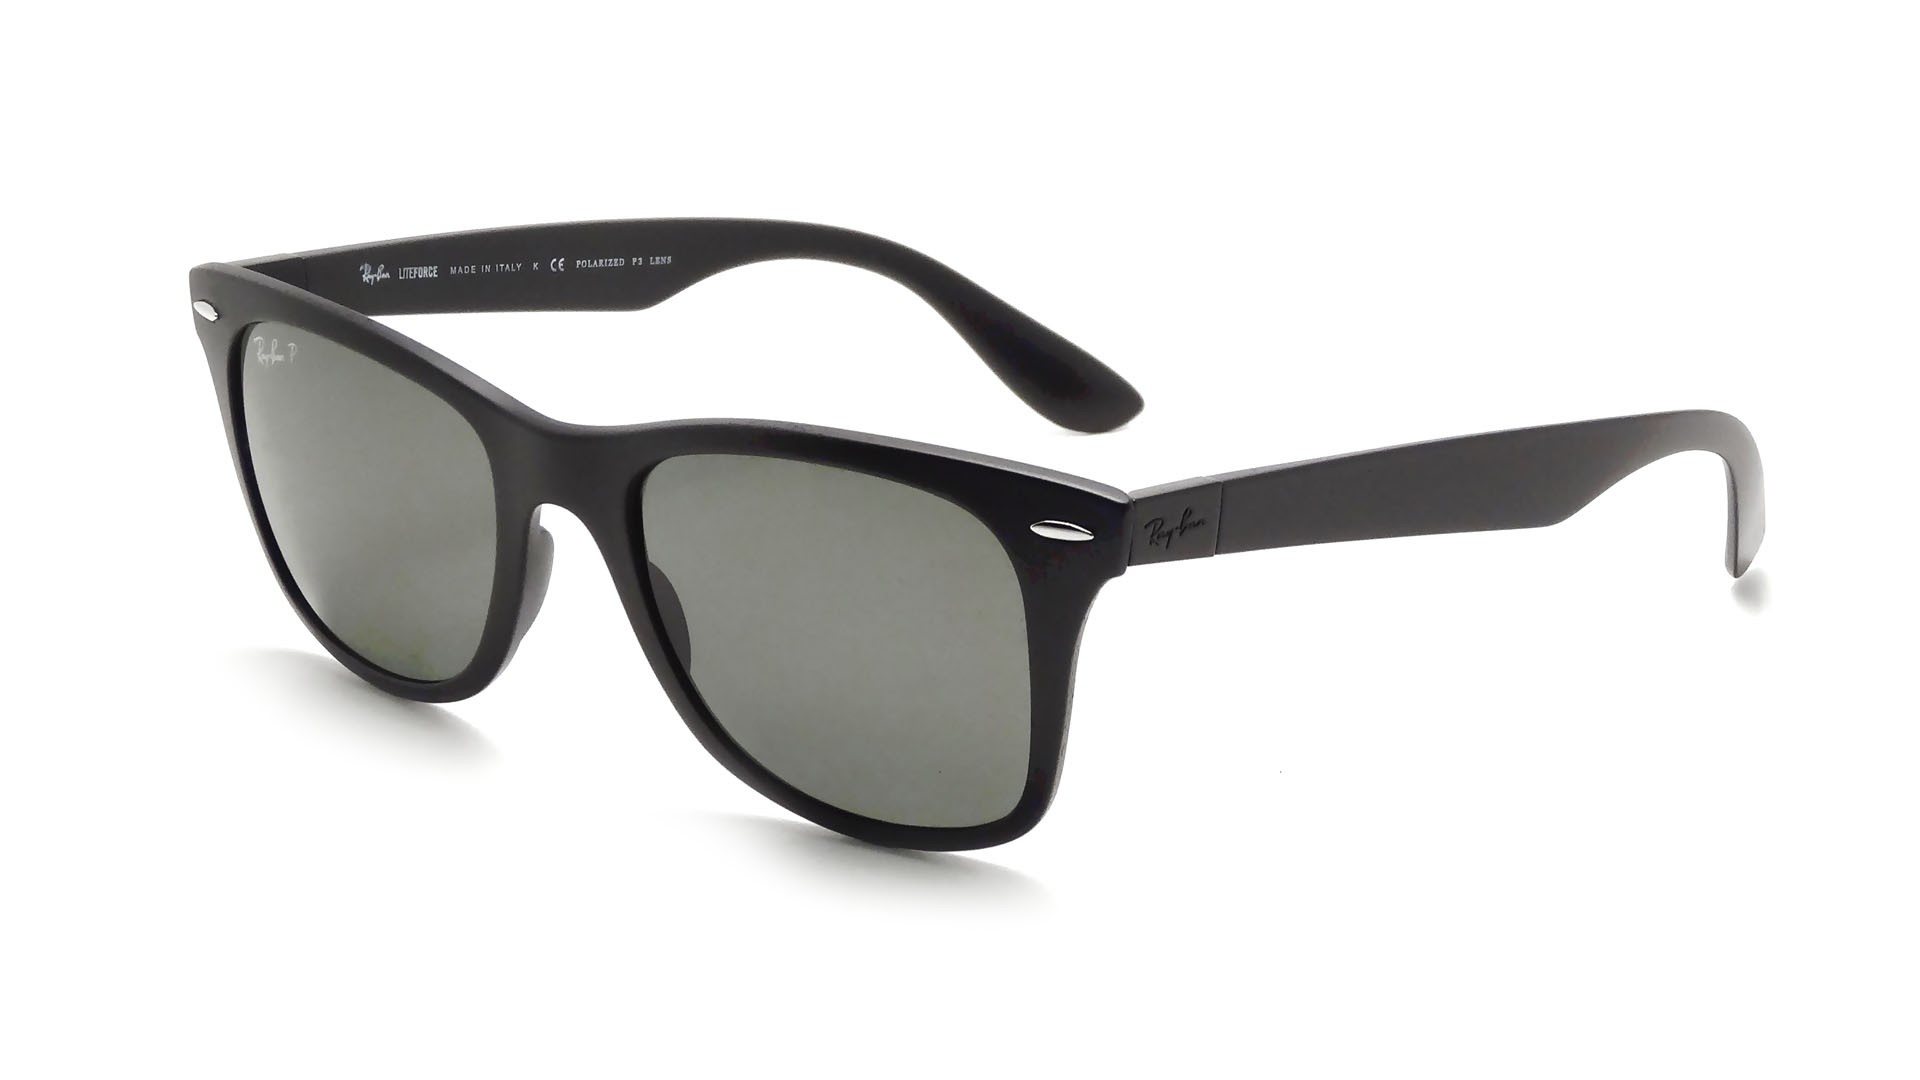 28ffcb8b78d Sunglasses Ray-Ban Wayfarer Liteforce Black RB4195 601S 9A 52-20 Medium  Polarized